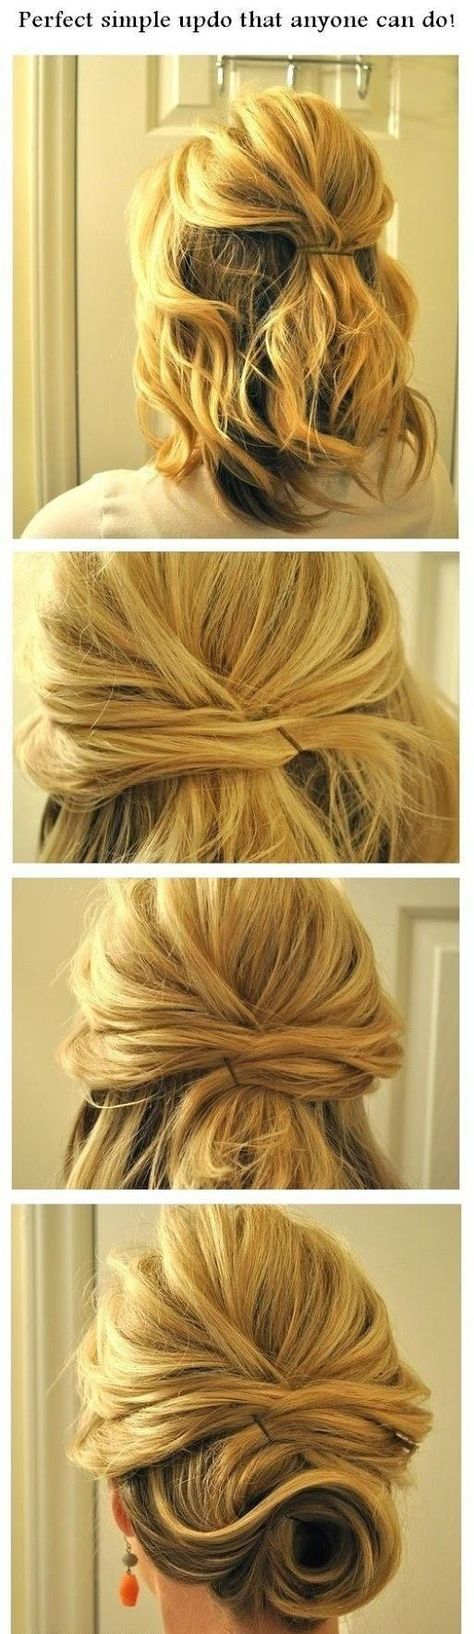 If you have short hair, you can also put strands over one another to make a messy braid.